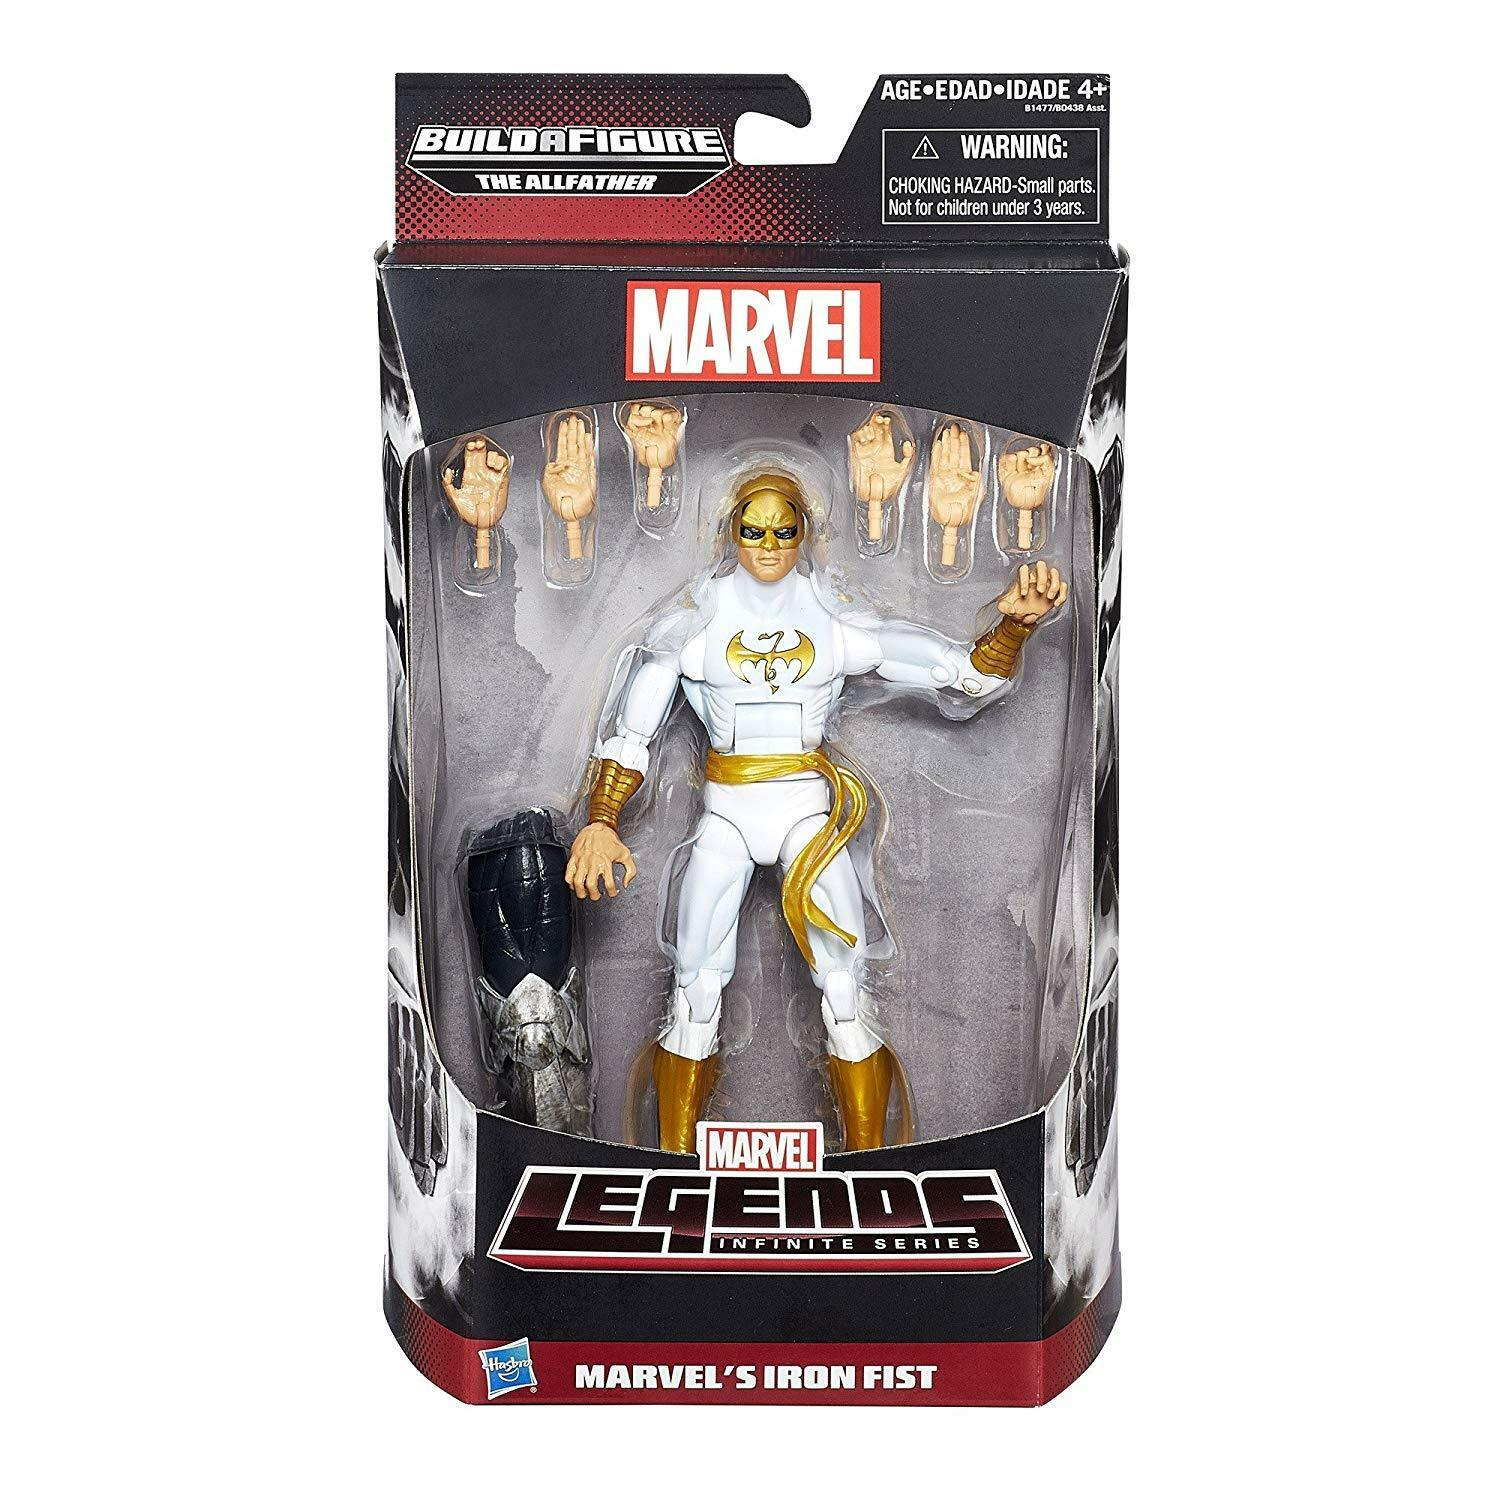 MARVEL Legends Avengers Serie Iron Fist 6 Figura